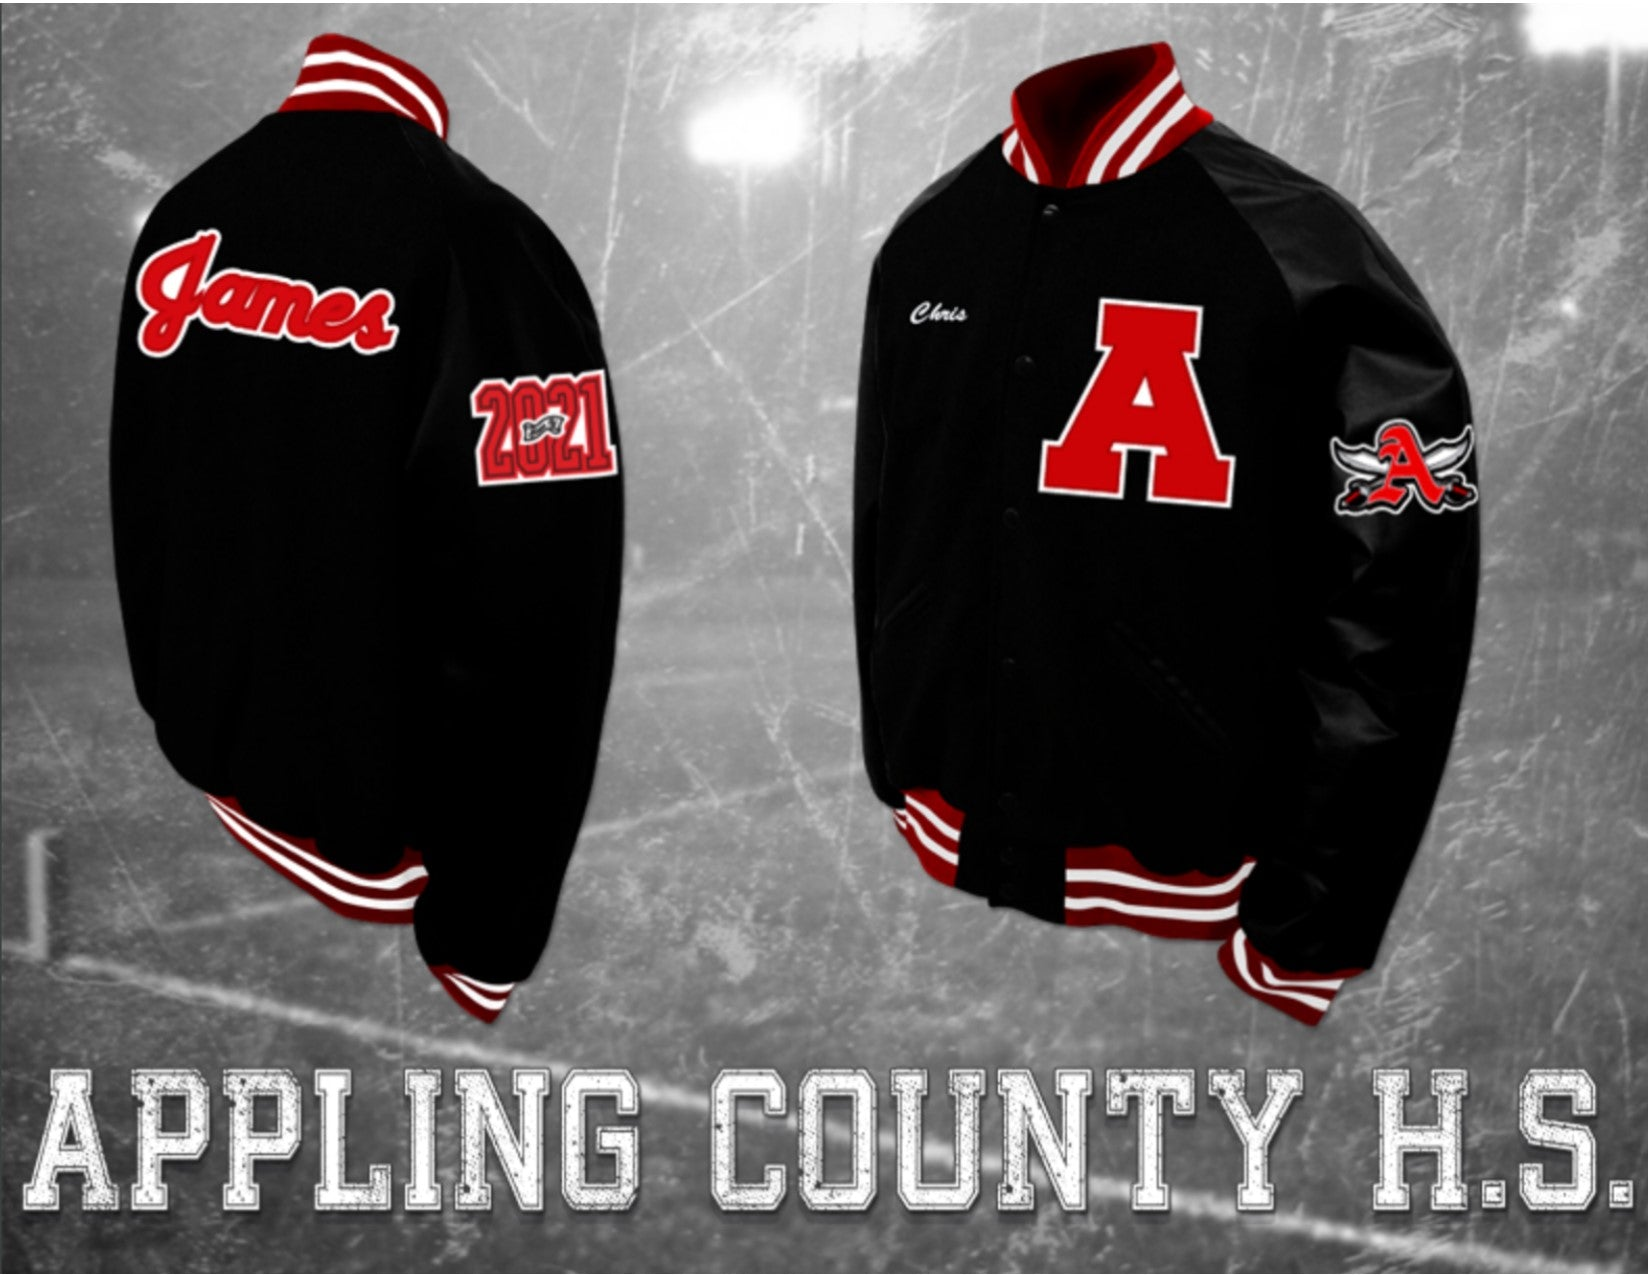 Appling County Letterman Jacket